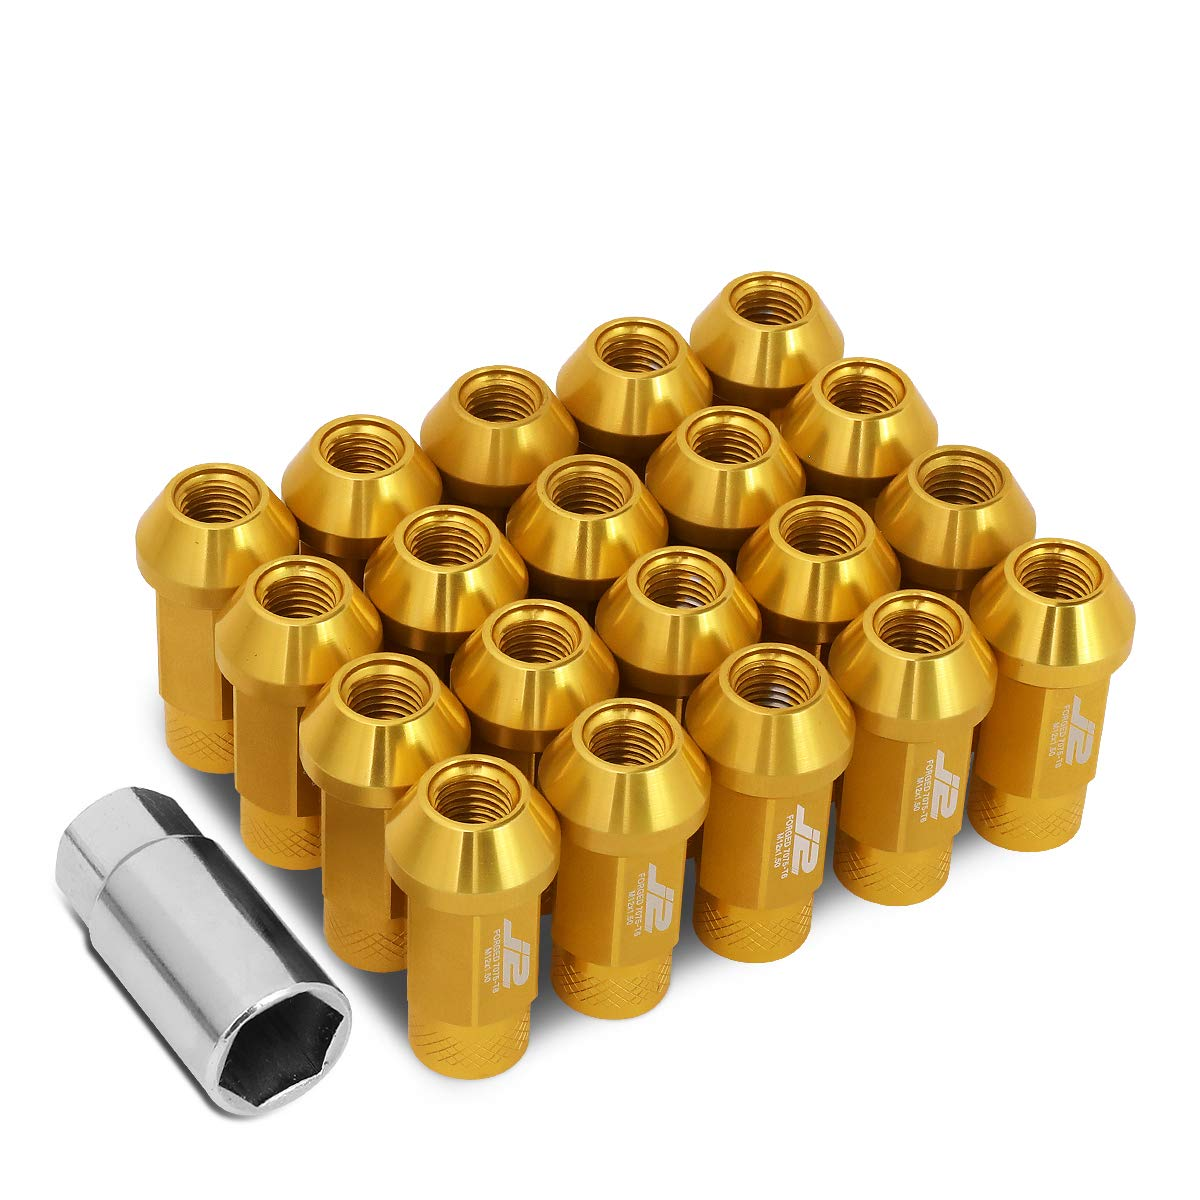 20PCS 50MM RED ALUMINUM 25MM OD M12X1.5 CONICAL OPEN-END LUG NUTS+ADAPTER